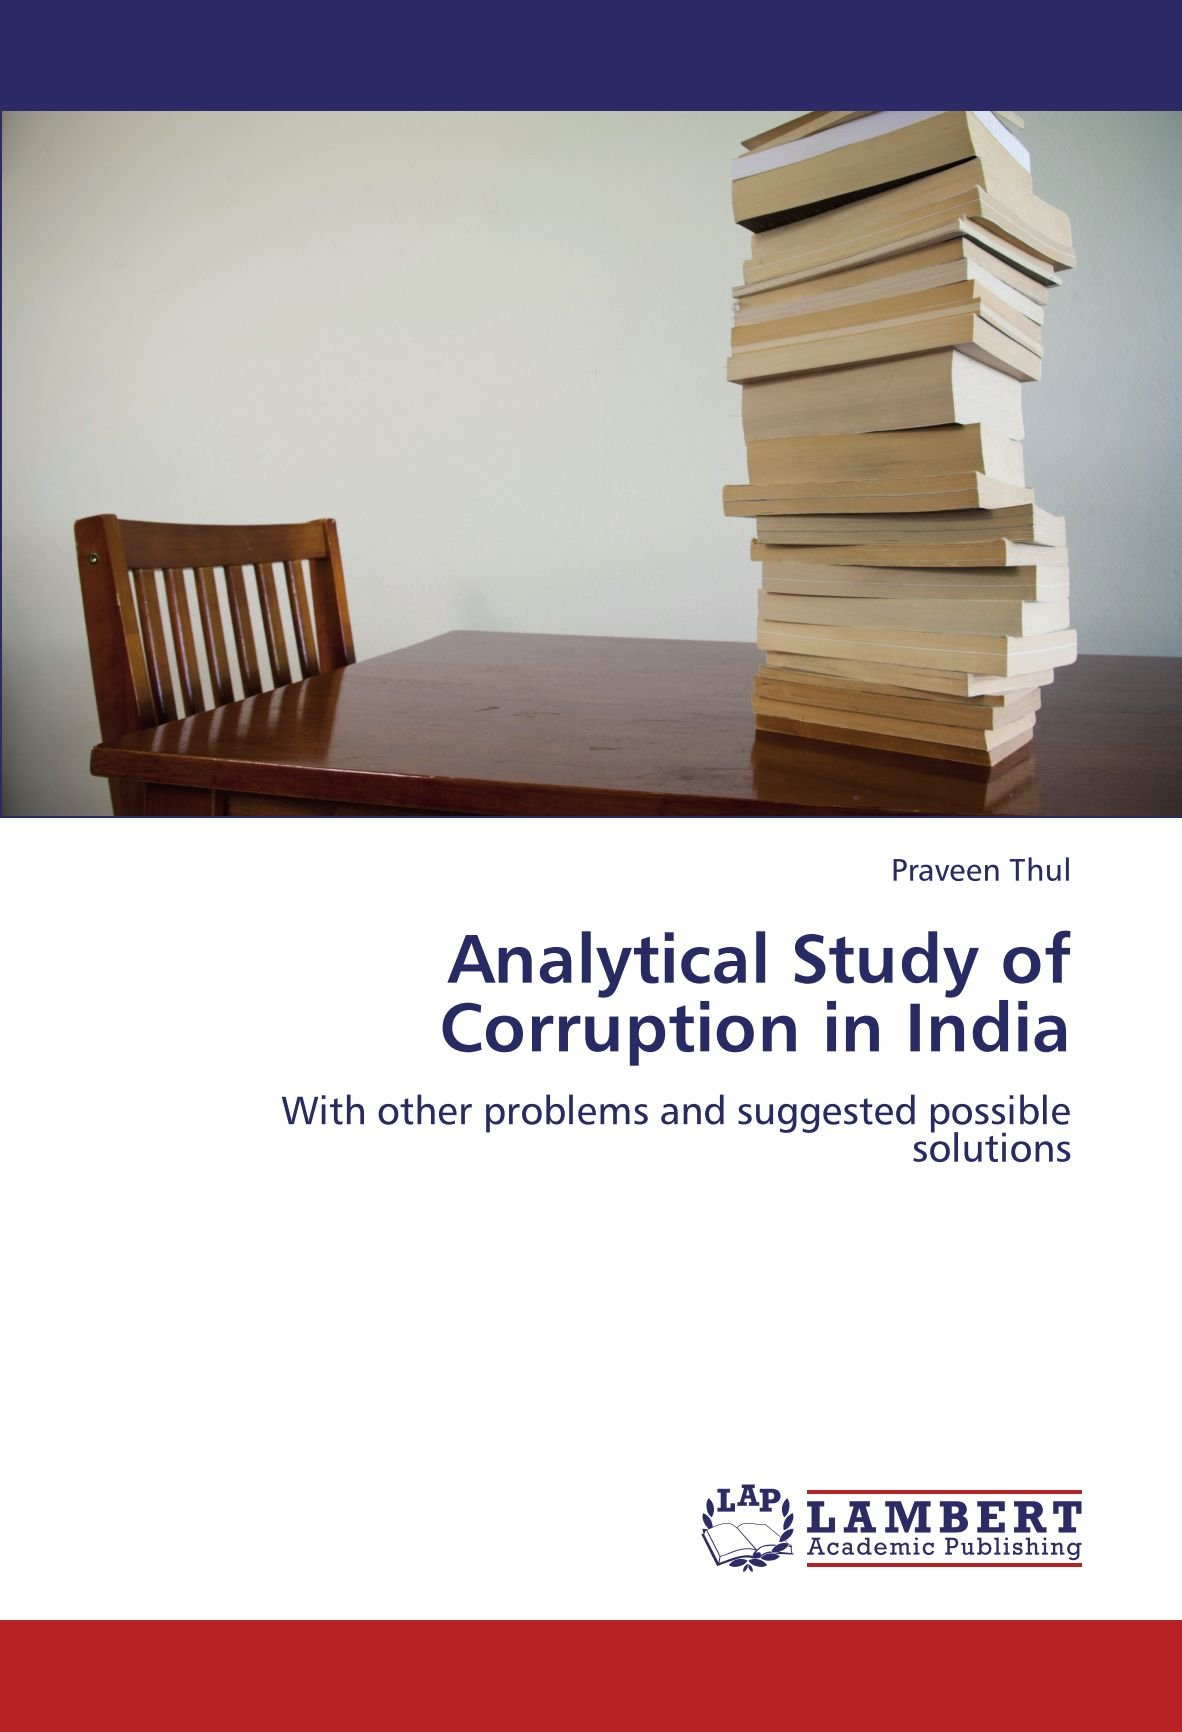 Analytical Study of Corruption in India: With other problems and suggested possible solutions PDF